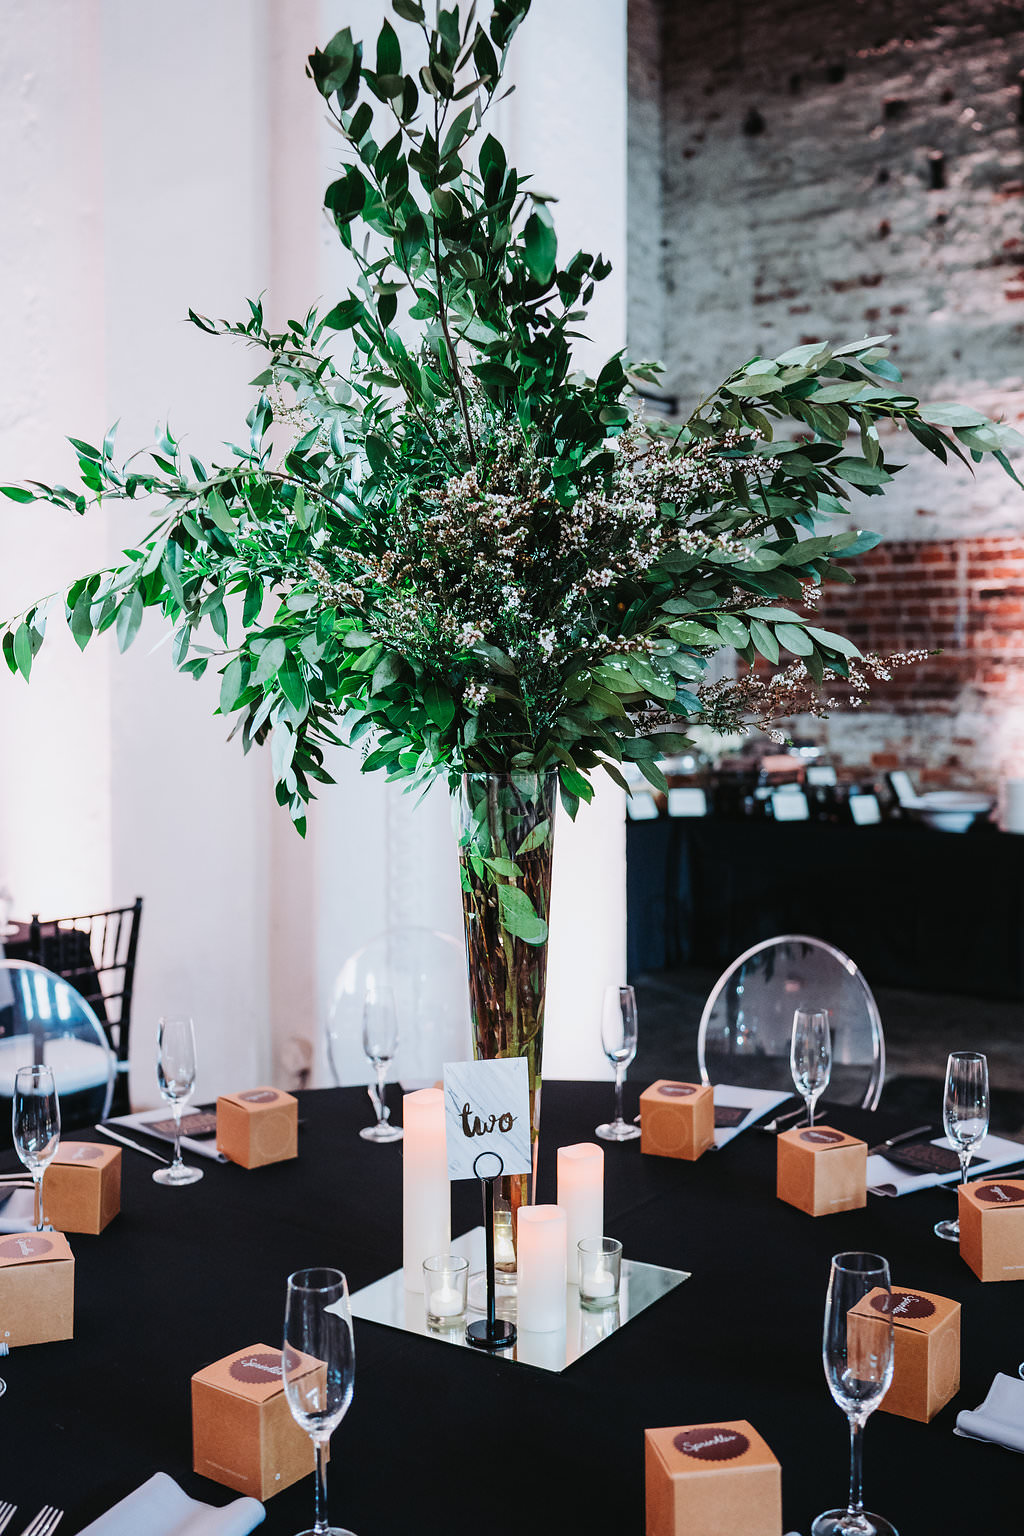 Modern Black and White Indian Wedding Reception with Black Linens, and Tall Greenery Centerpieces in Clear Vases with Pillar Candles   Tampa Bay Historic Wedding Venue The Rialto Theater   Planner Glitz Events